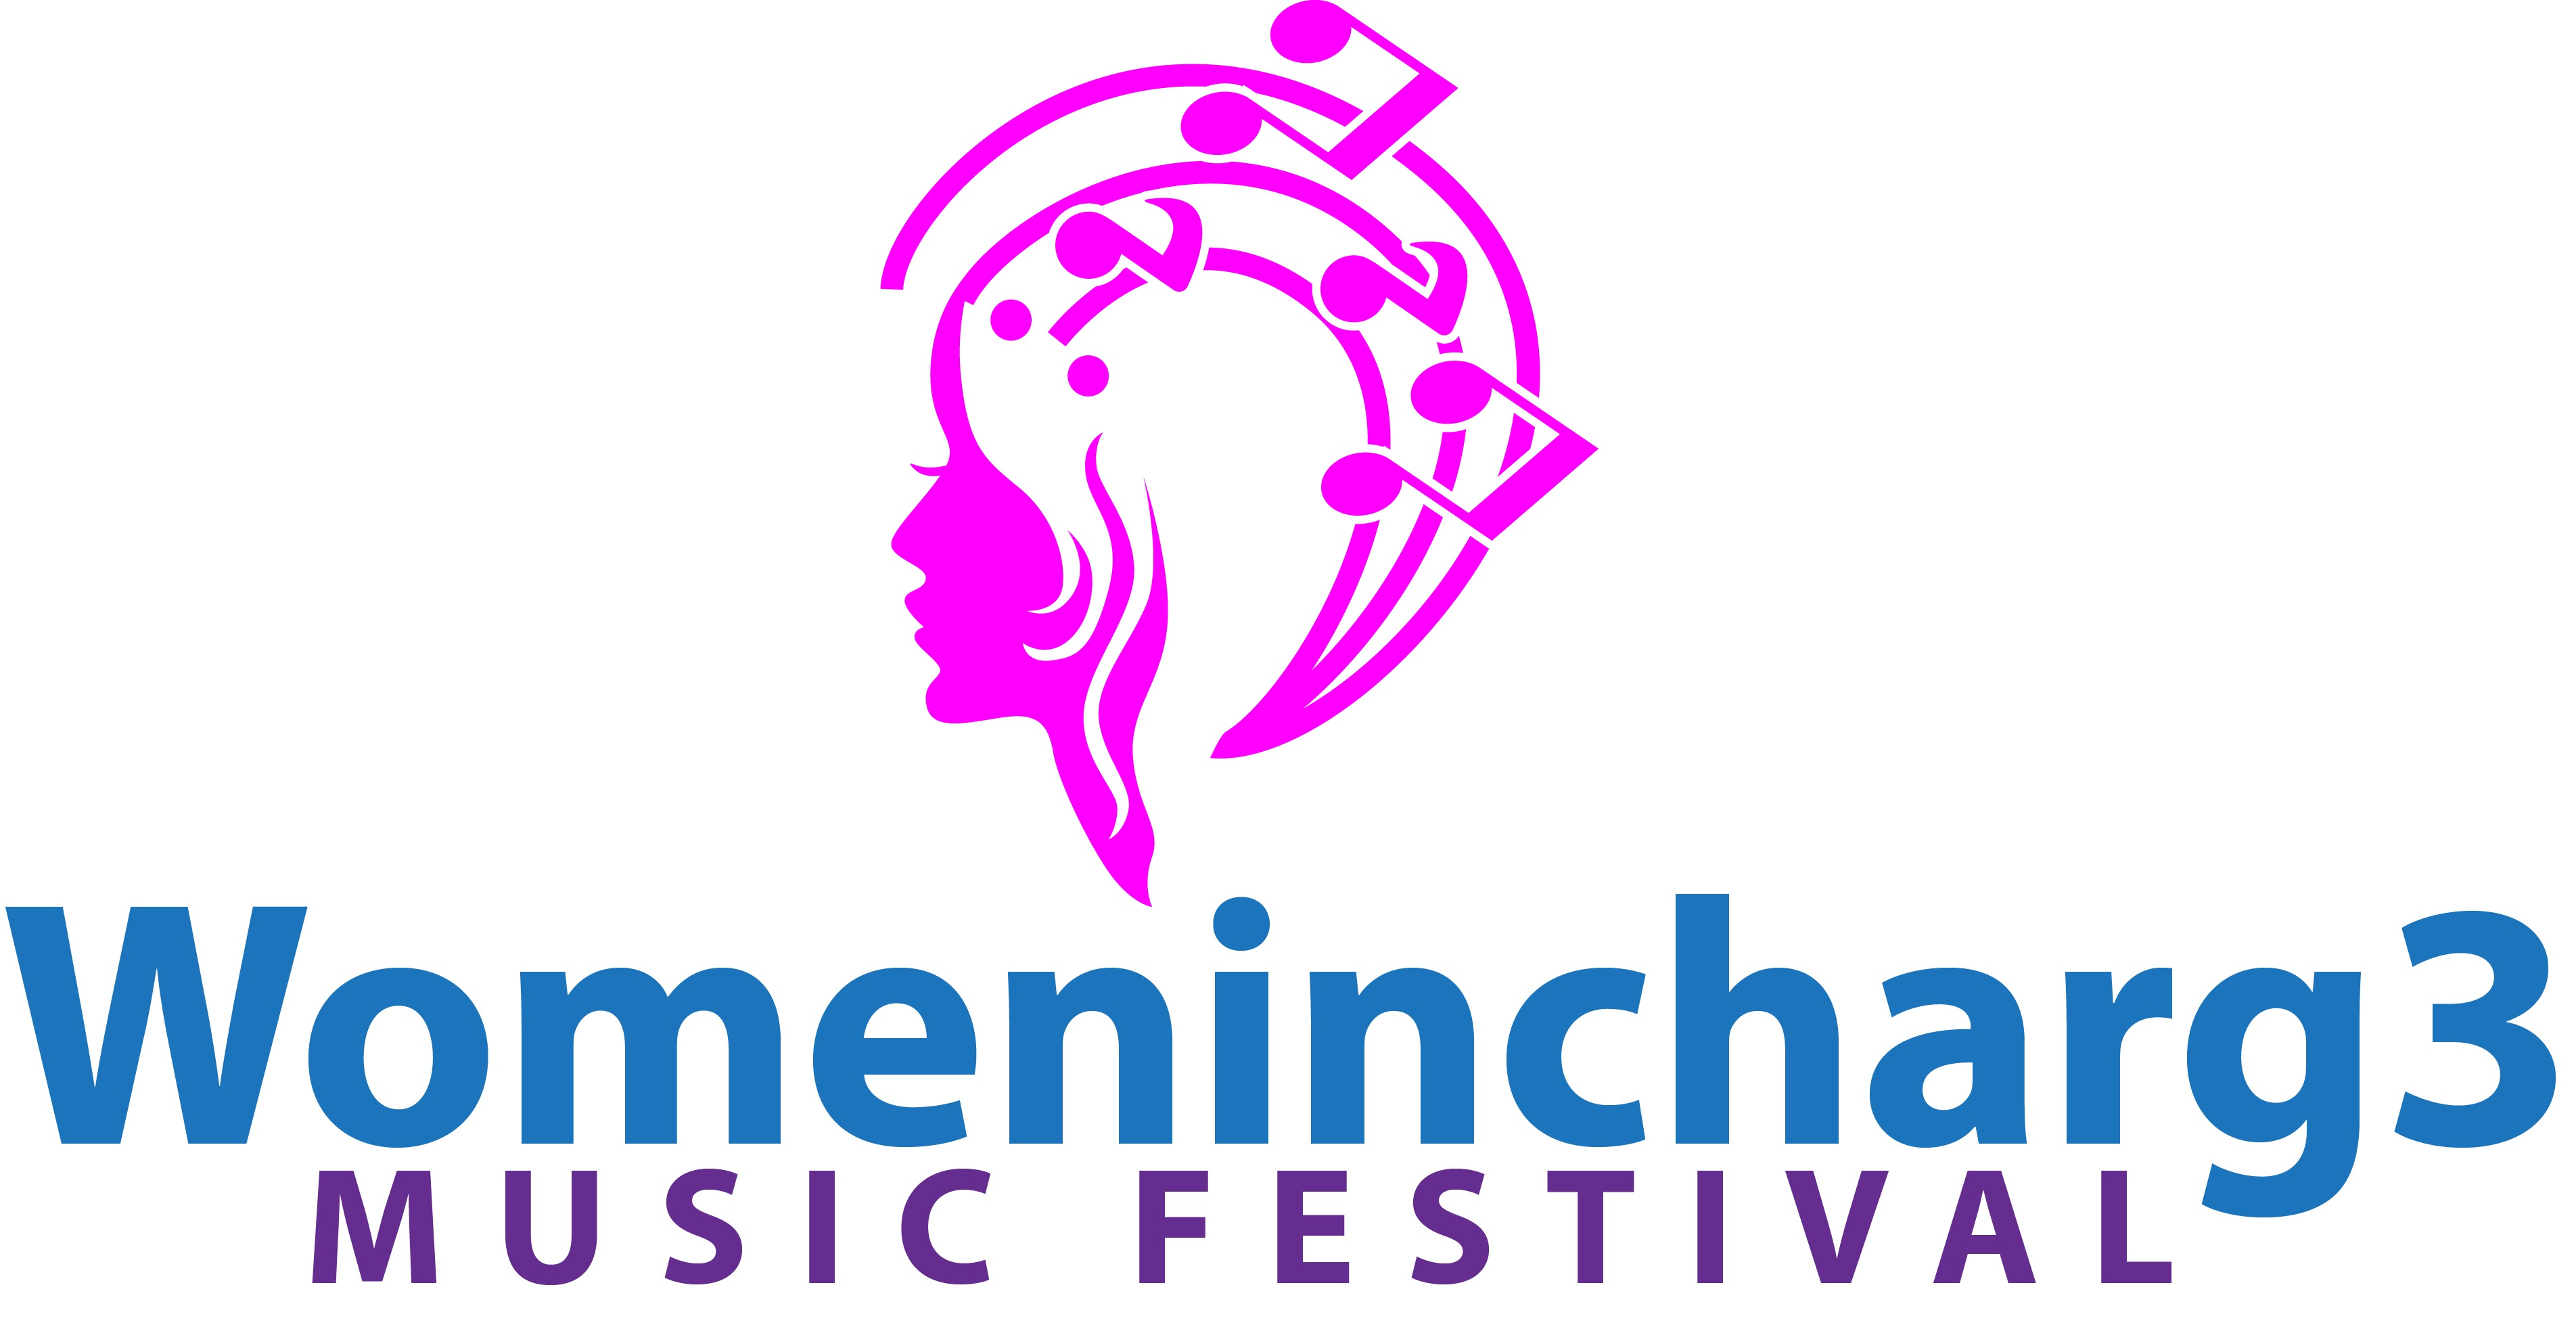 Womenincharg3 Music Festival